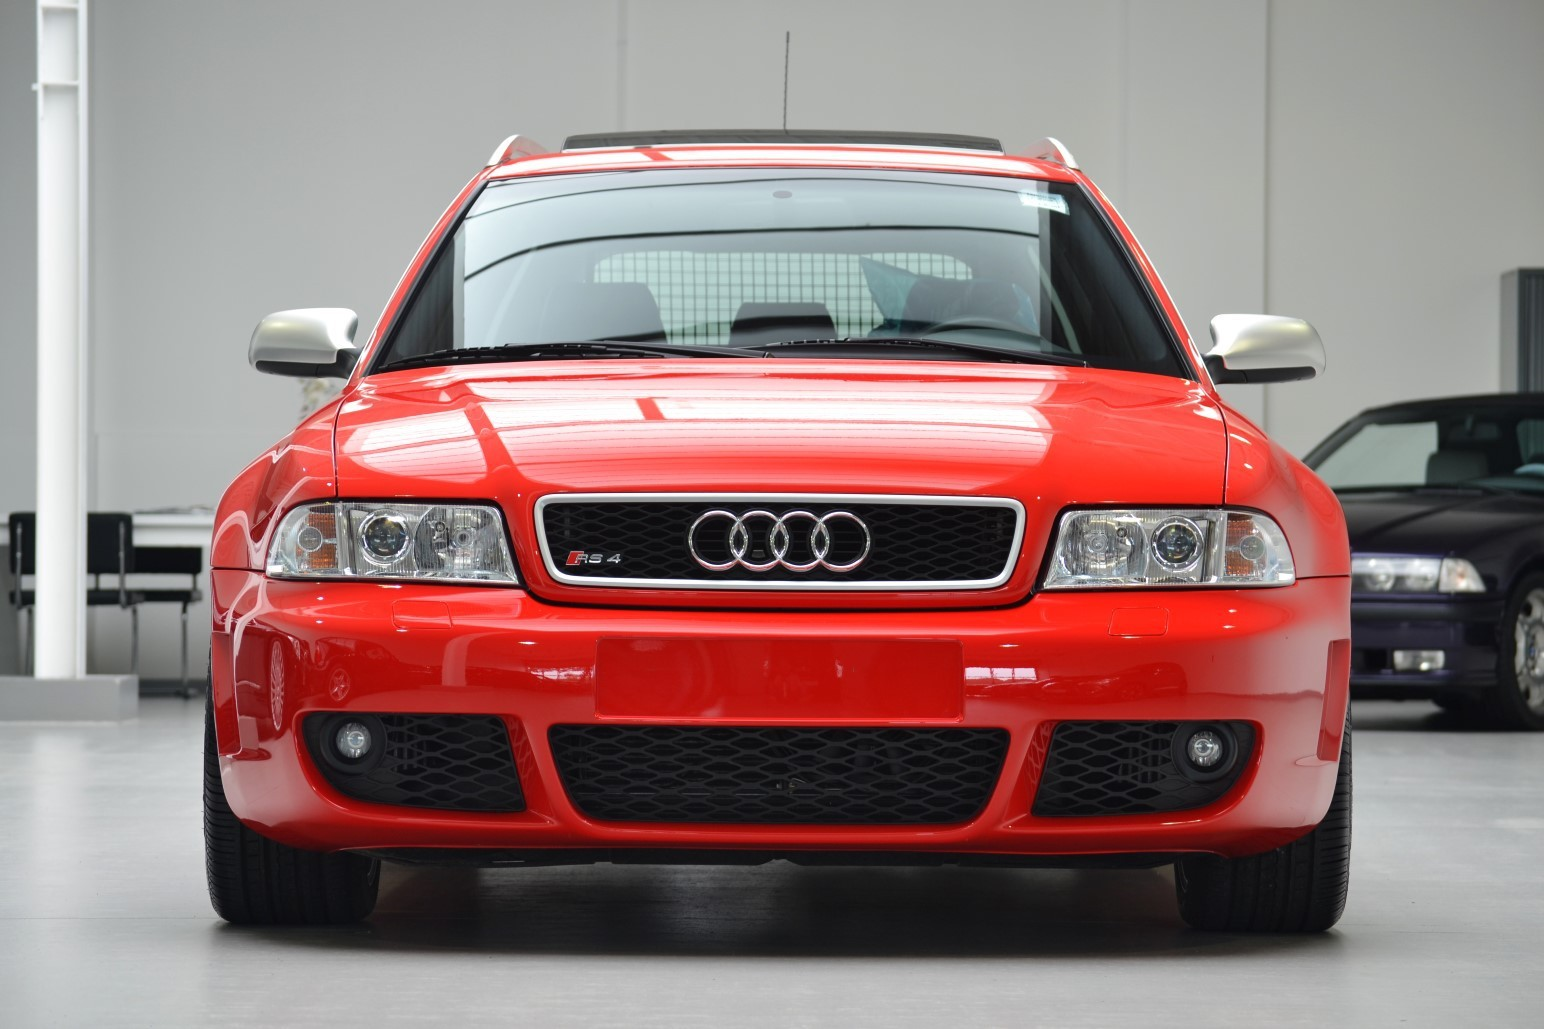 Audi a4 quattro cabriolet for sale